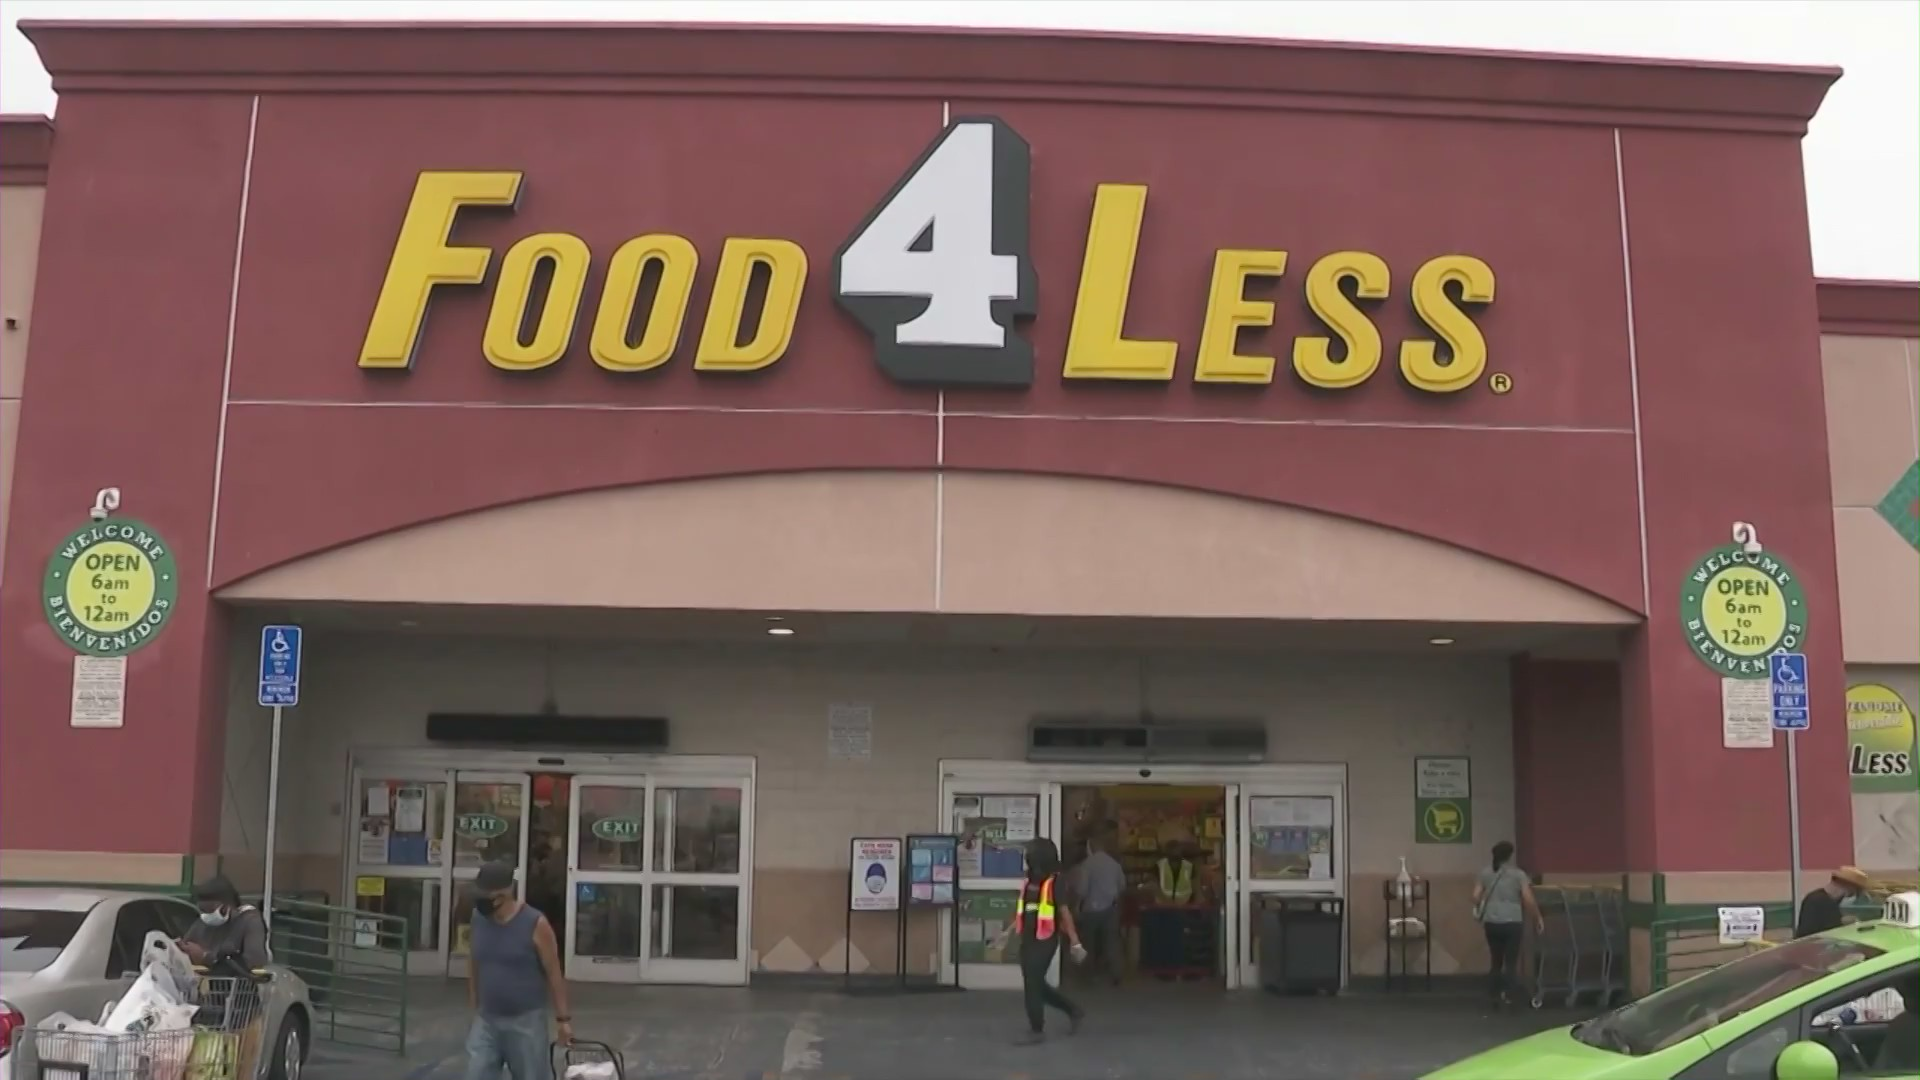 A Food4Less location on 1700 W. Sixth St. in the Westlake District is seen on Aug. 10, 2020. (KTLA)